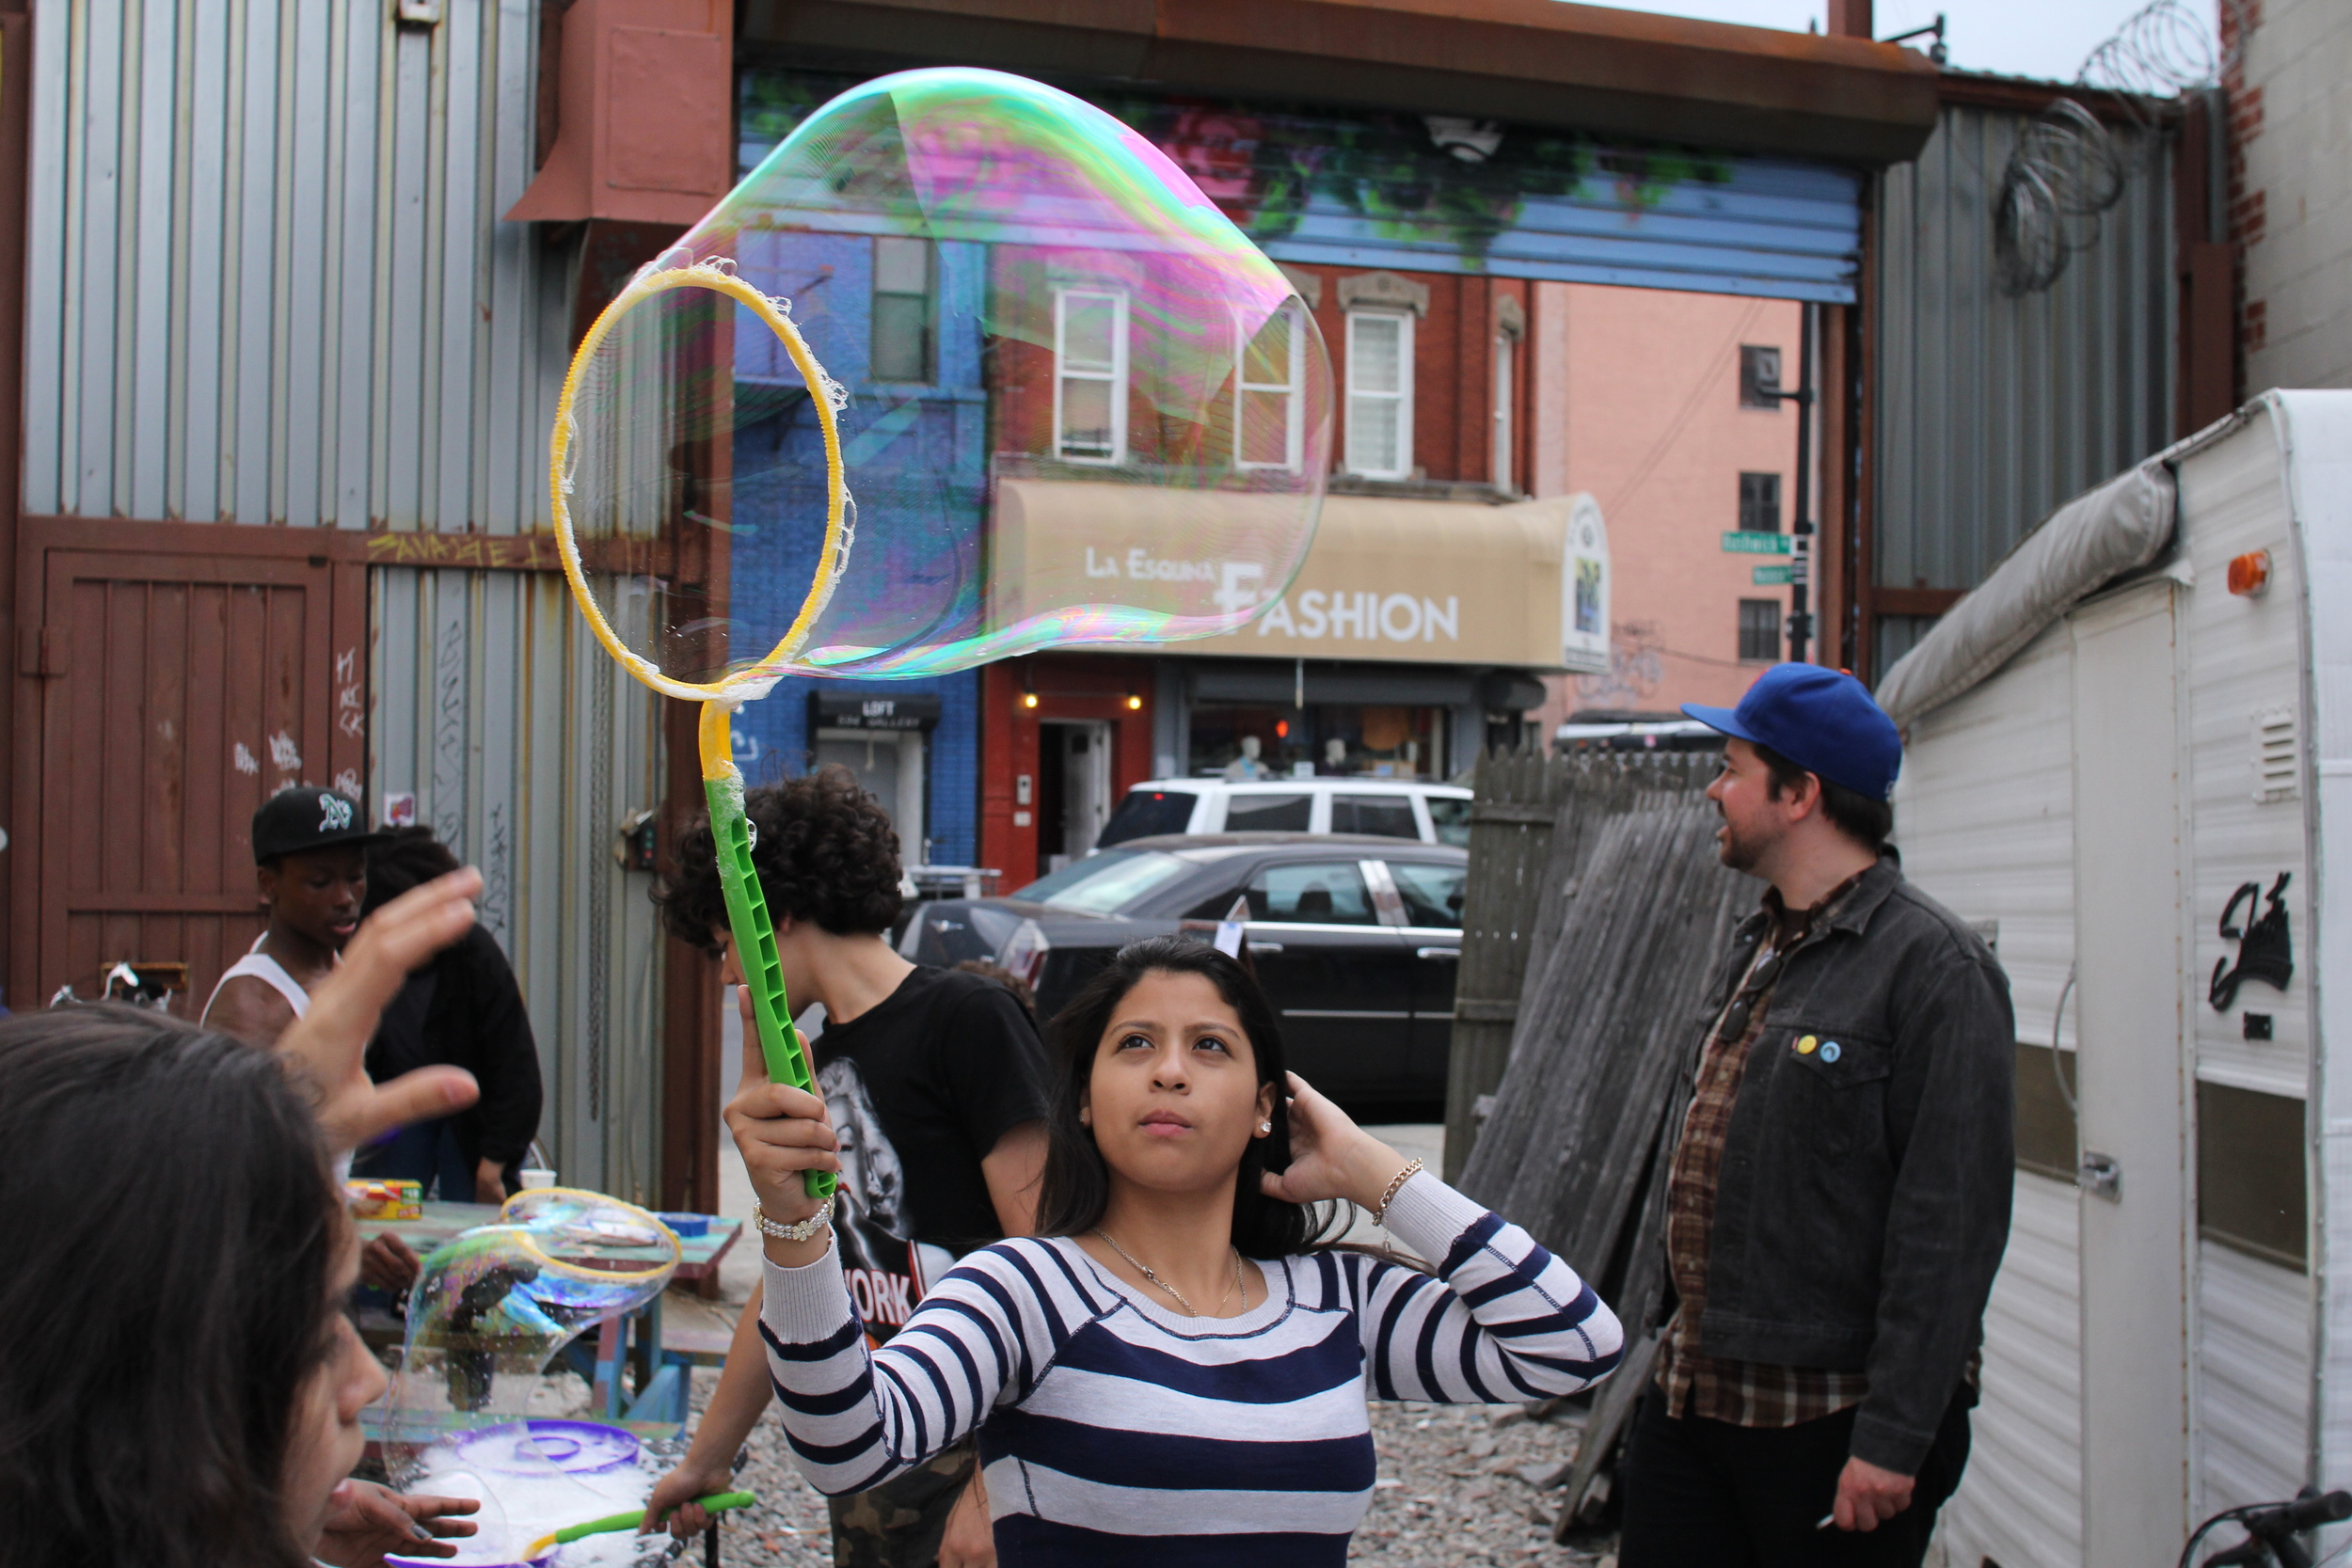 The Yard Party's bubble perfectionist. Photo credit Andrew McFarland